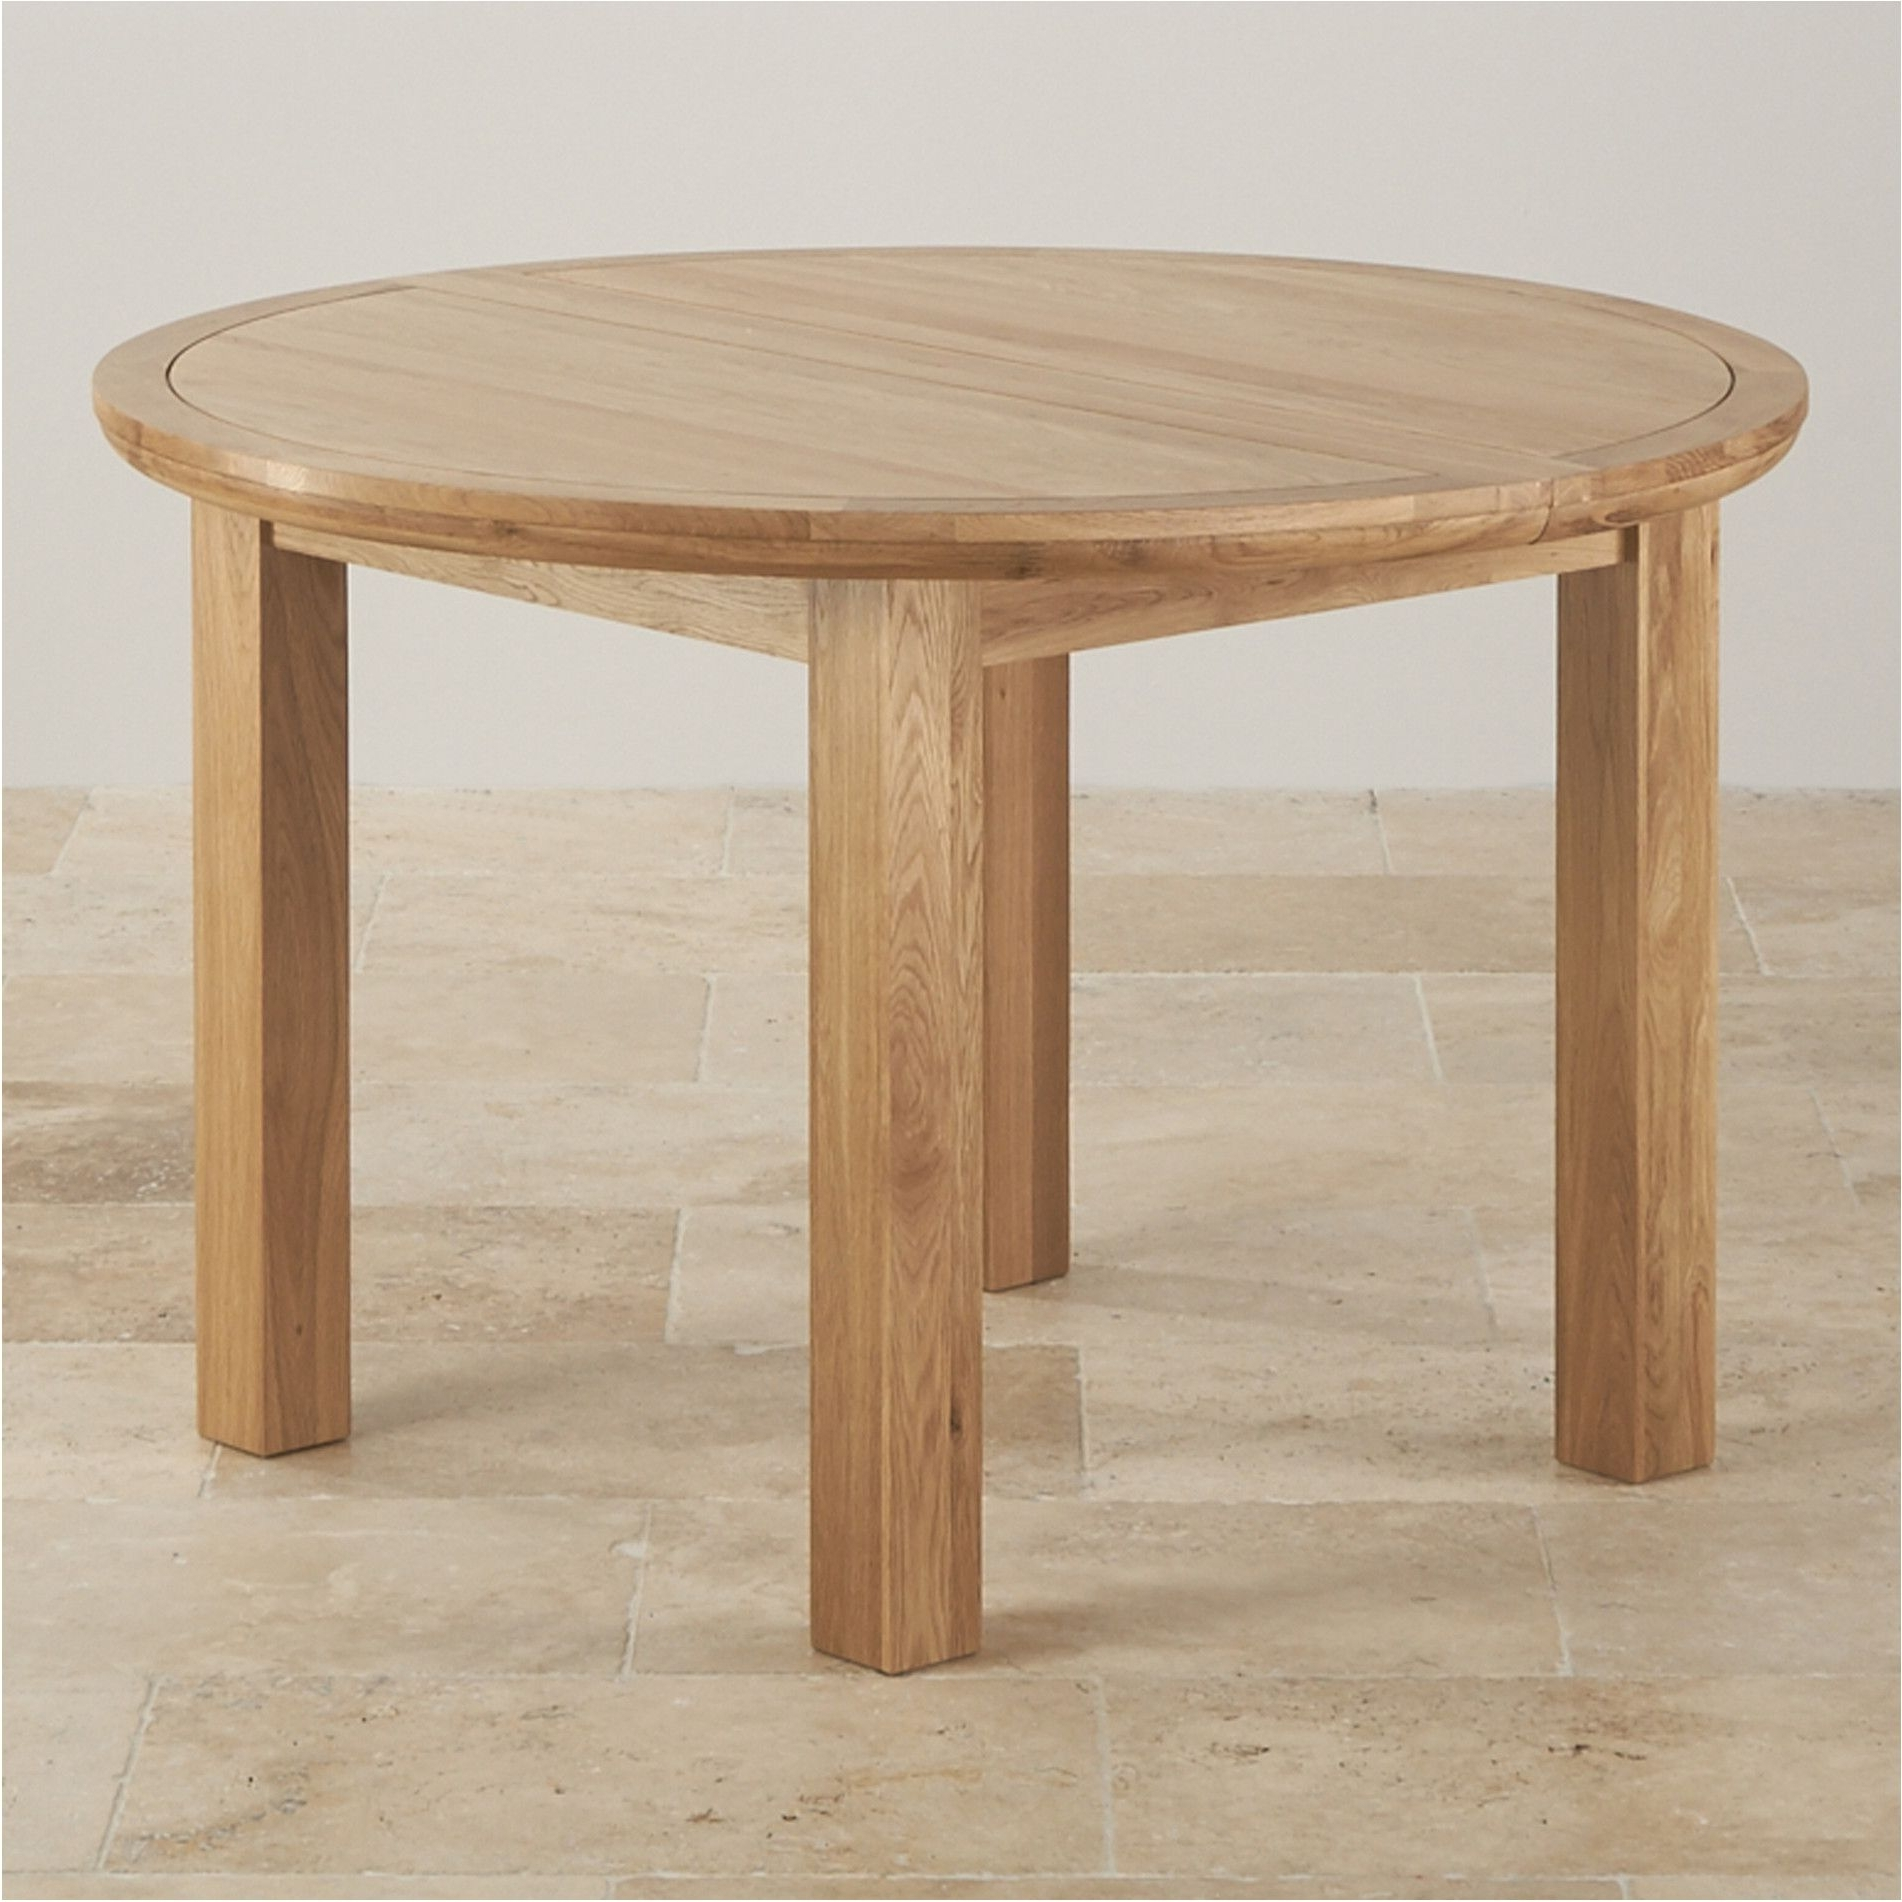 Widely Used Marvelous Stunning Round Oak Dining Tables Pertaining To House With Round Oak Dining Tables And Chairs (View 24 of 25)